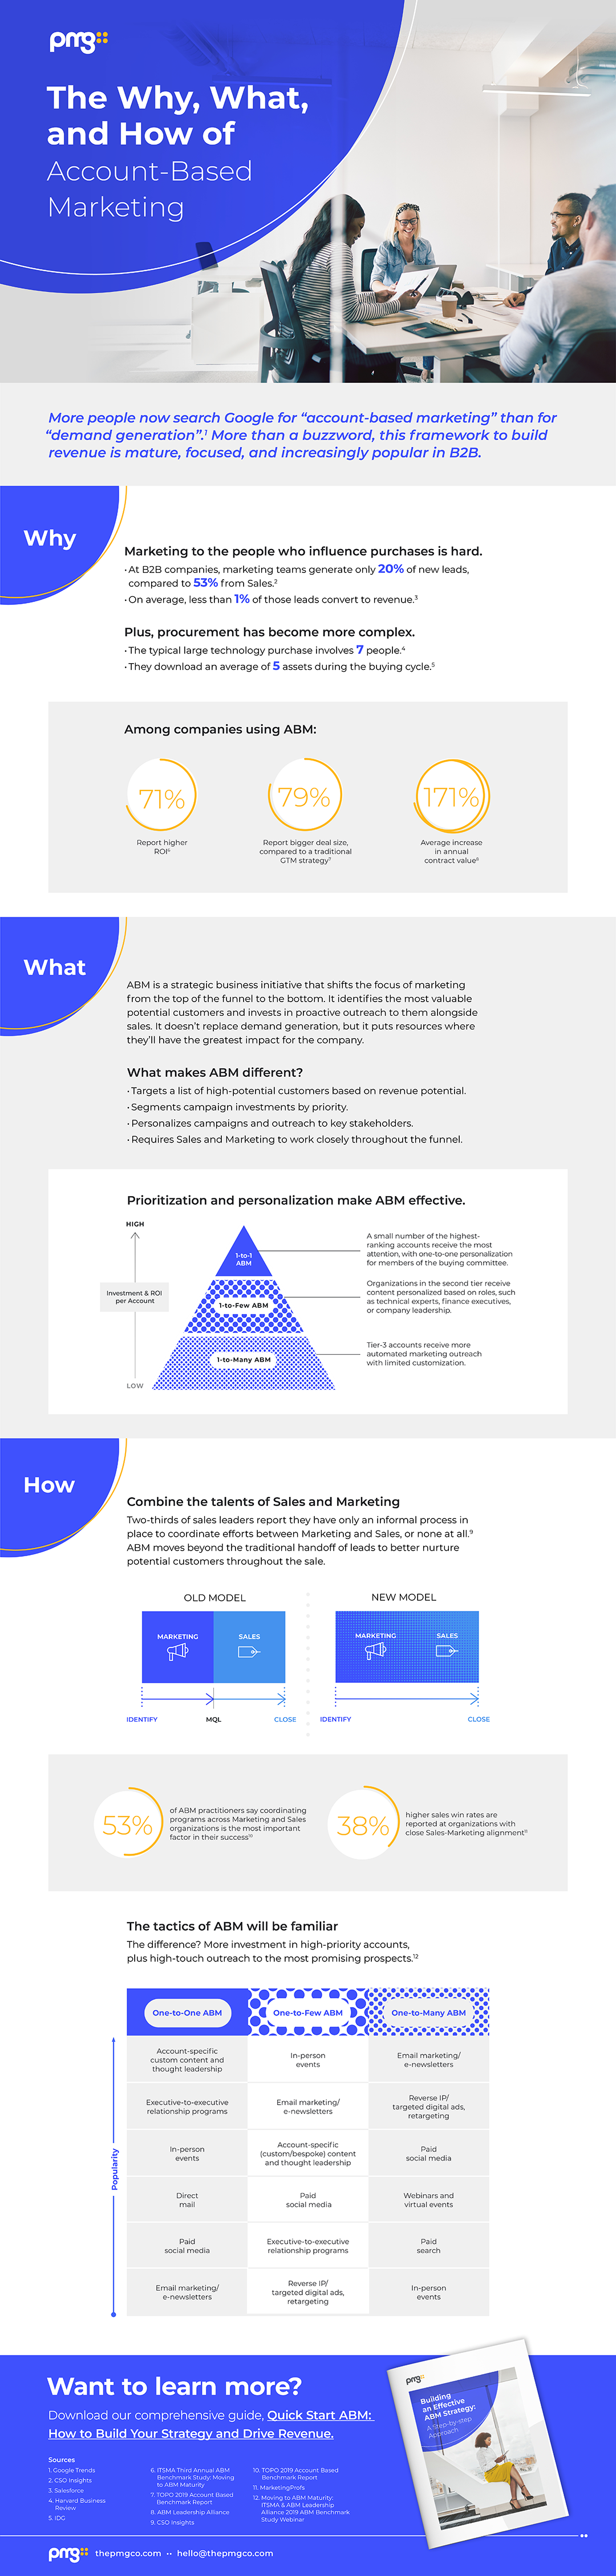 Account-Based Marketing Infographic by PMG